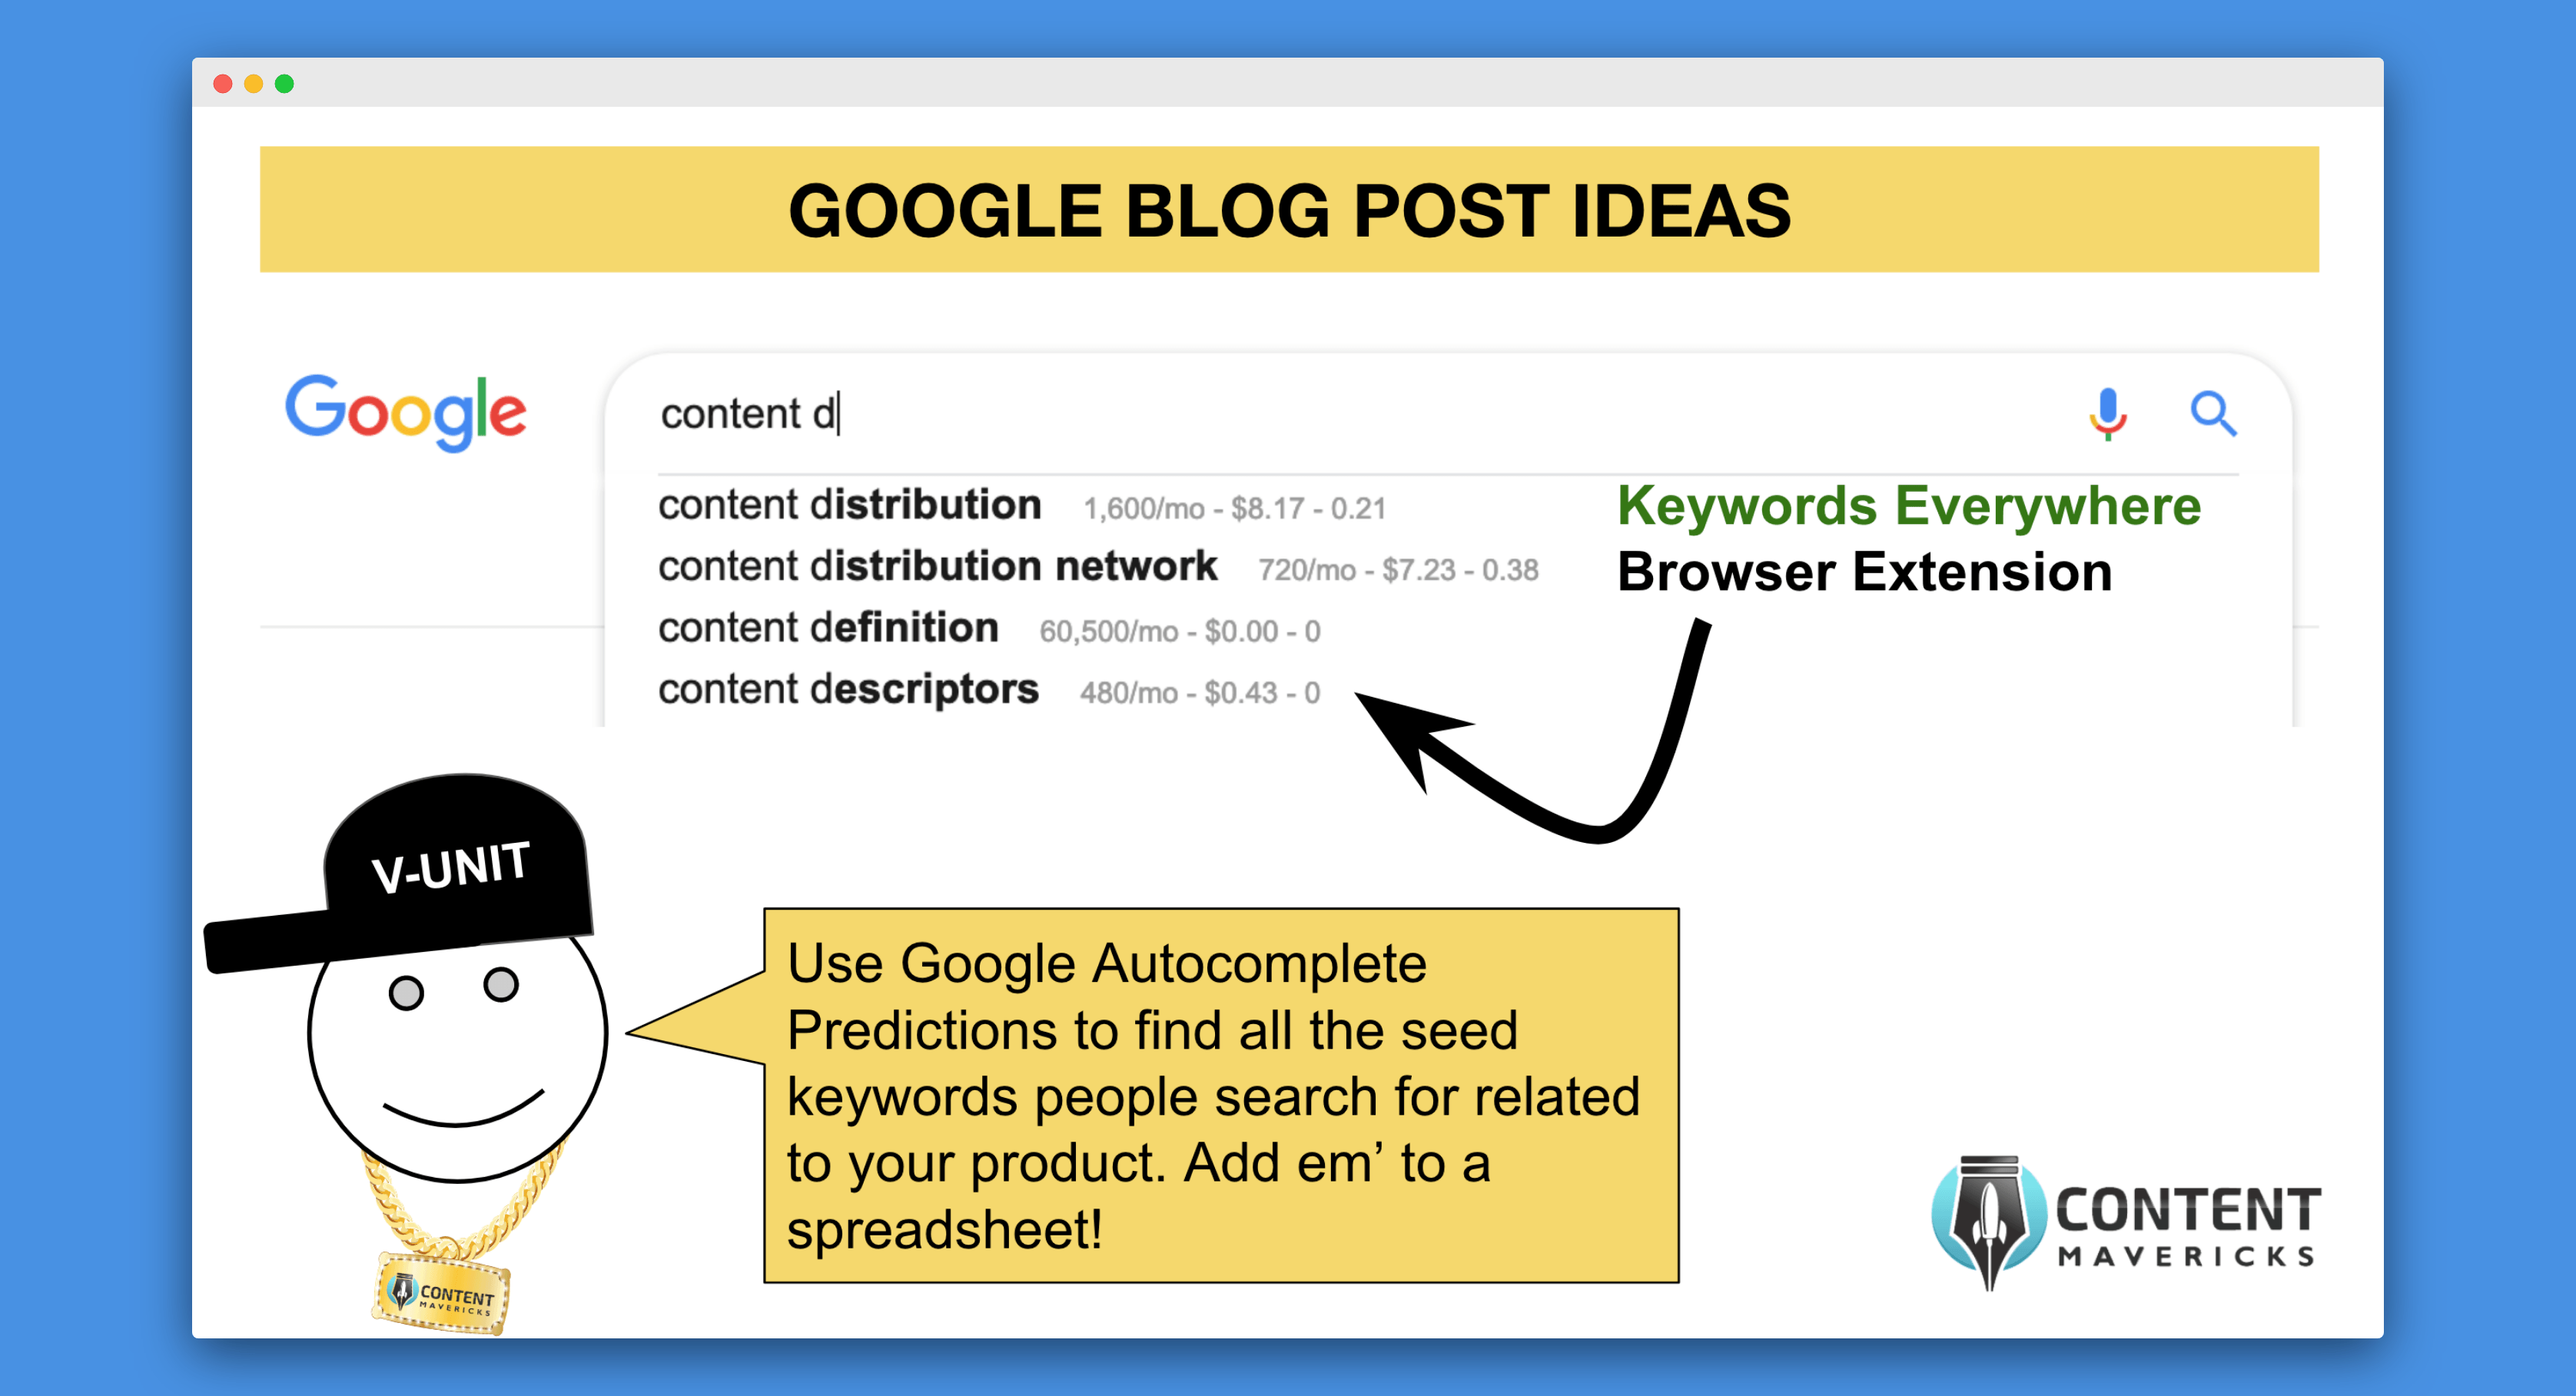 google blog post ideas image